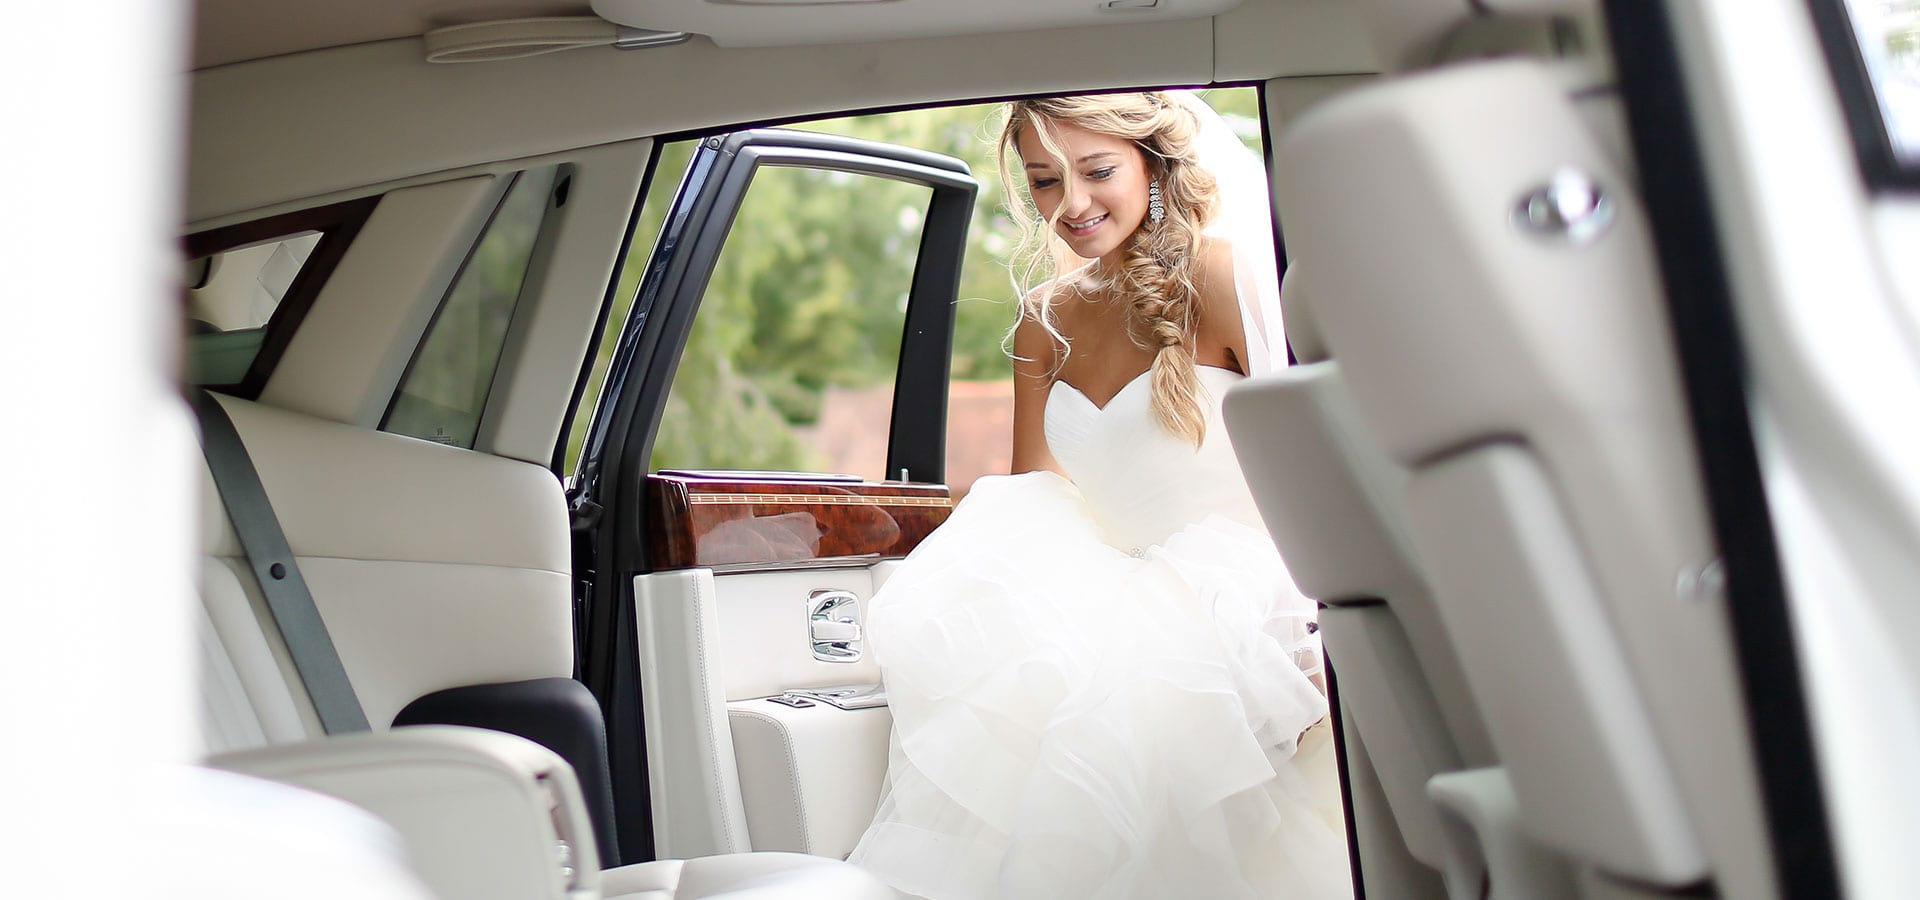 Rolls-Royce-Phantom-Wedding-Car-White-Bride-Entering